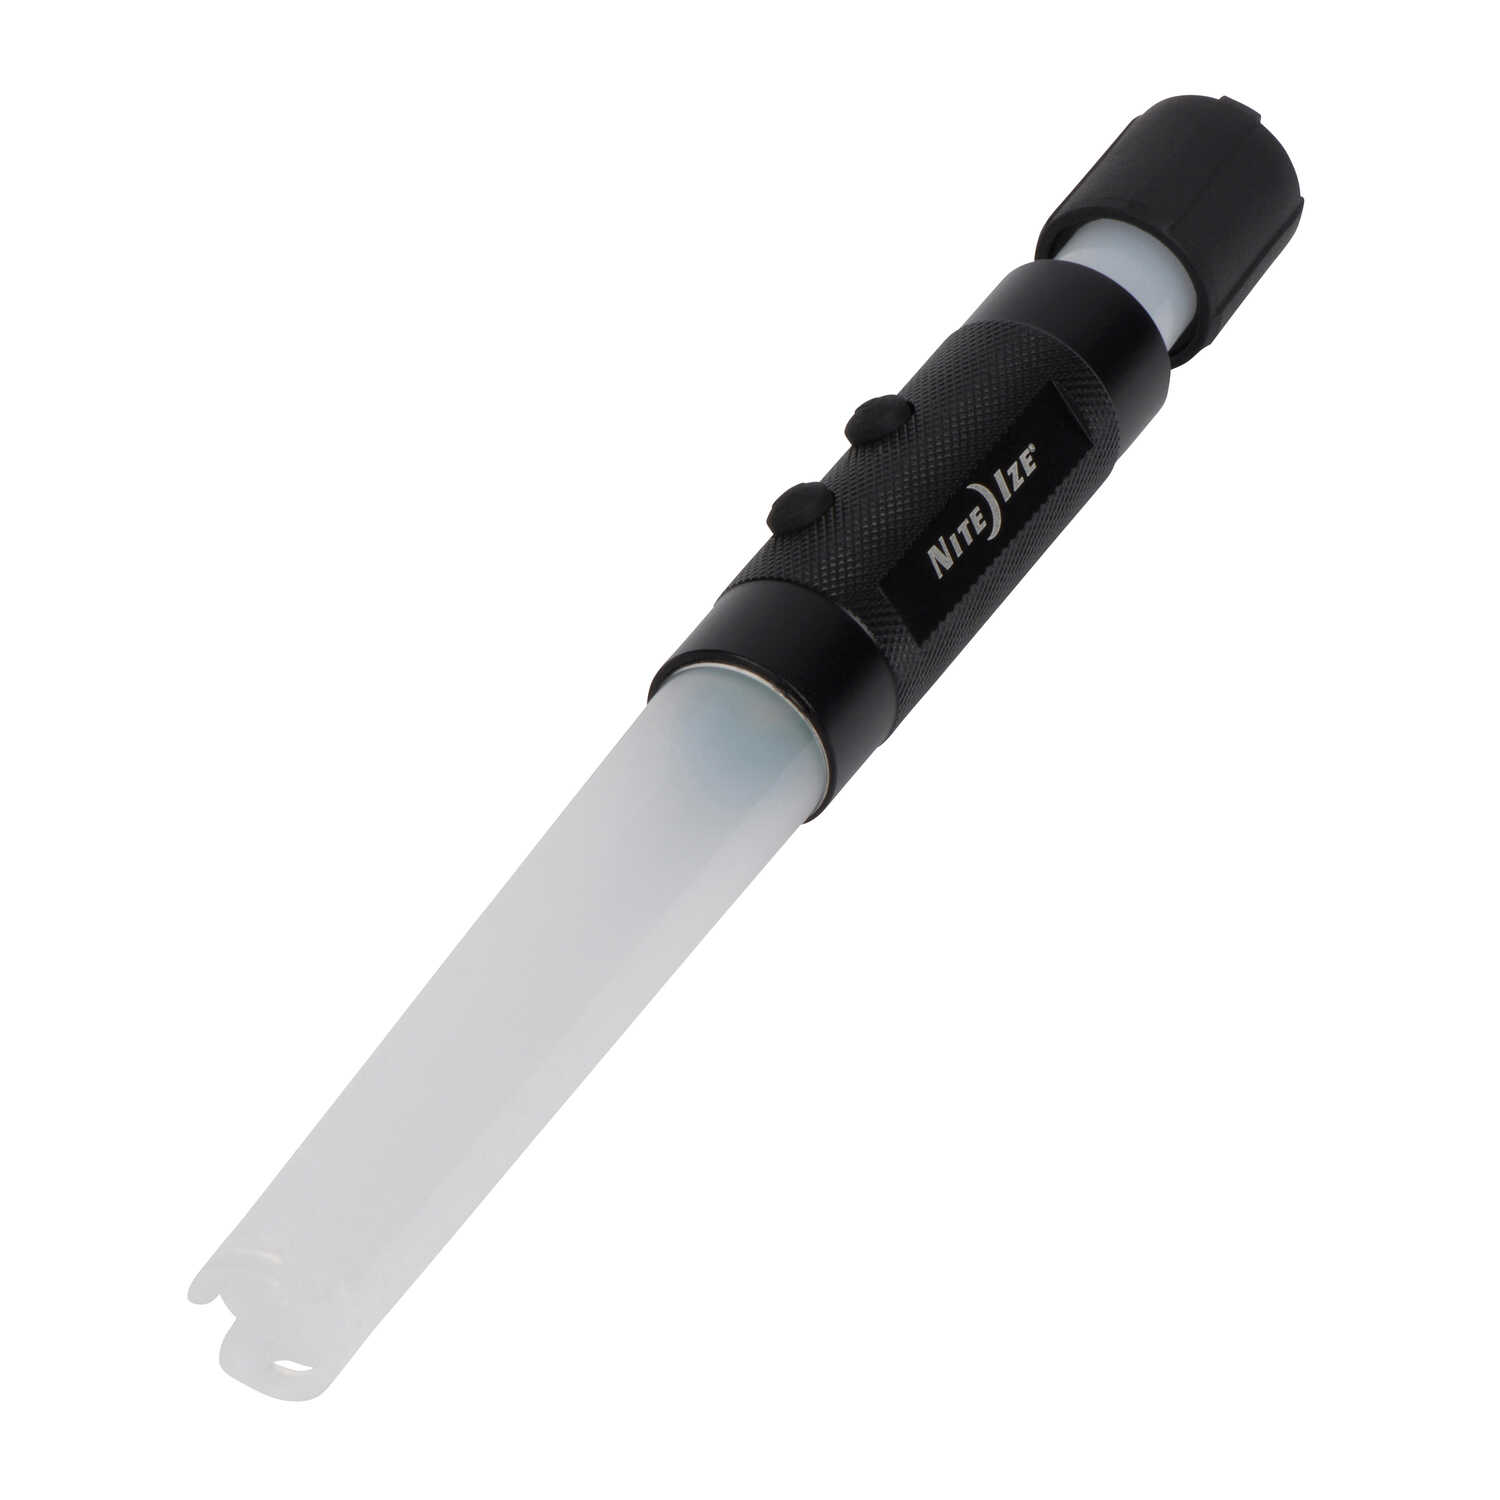 Nite Ize  3-in-1  60 lumens Black  LED  Flashstick  AA Battery